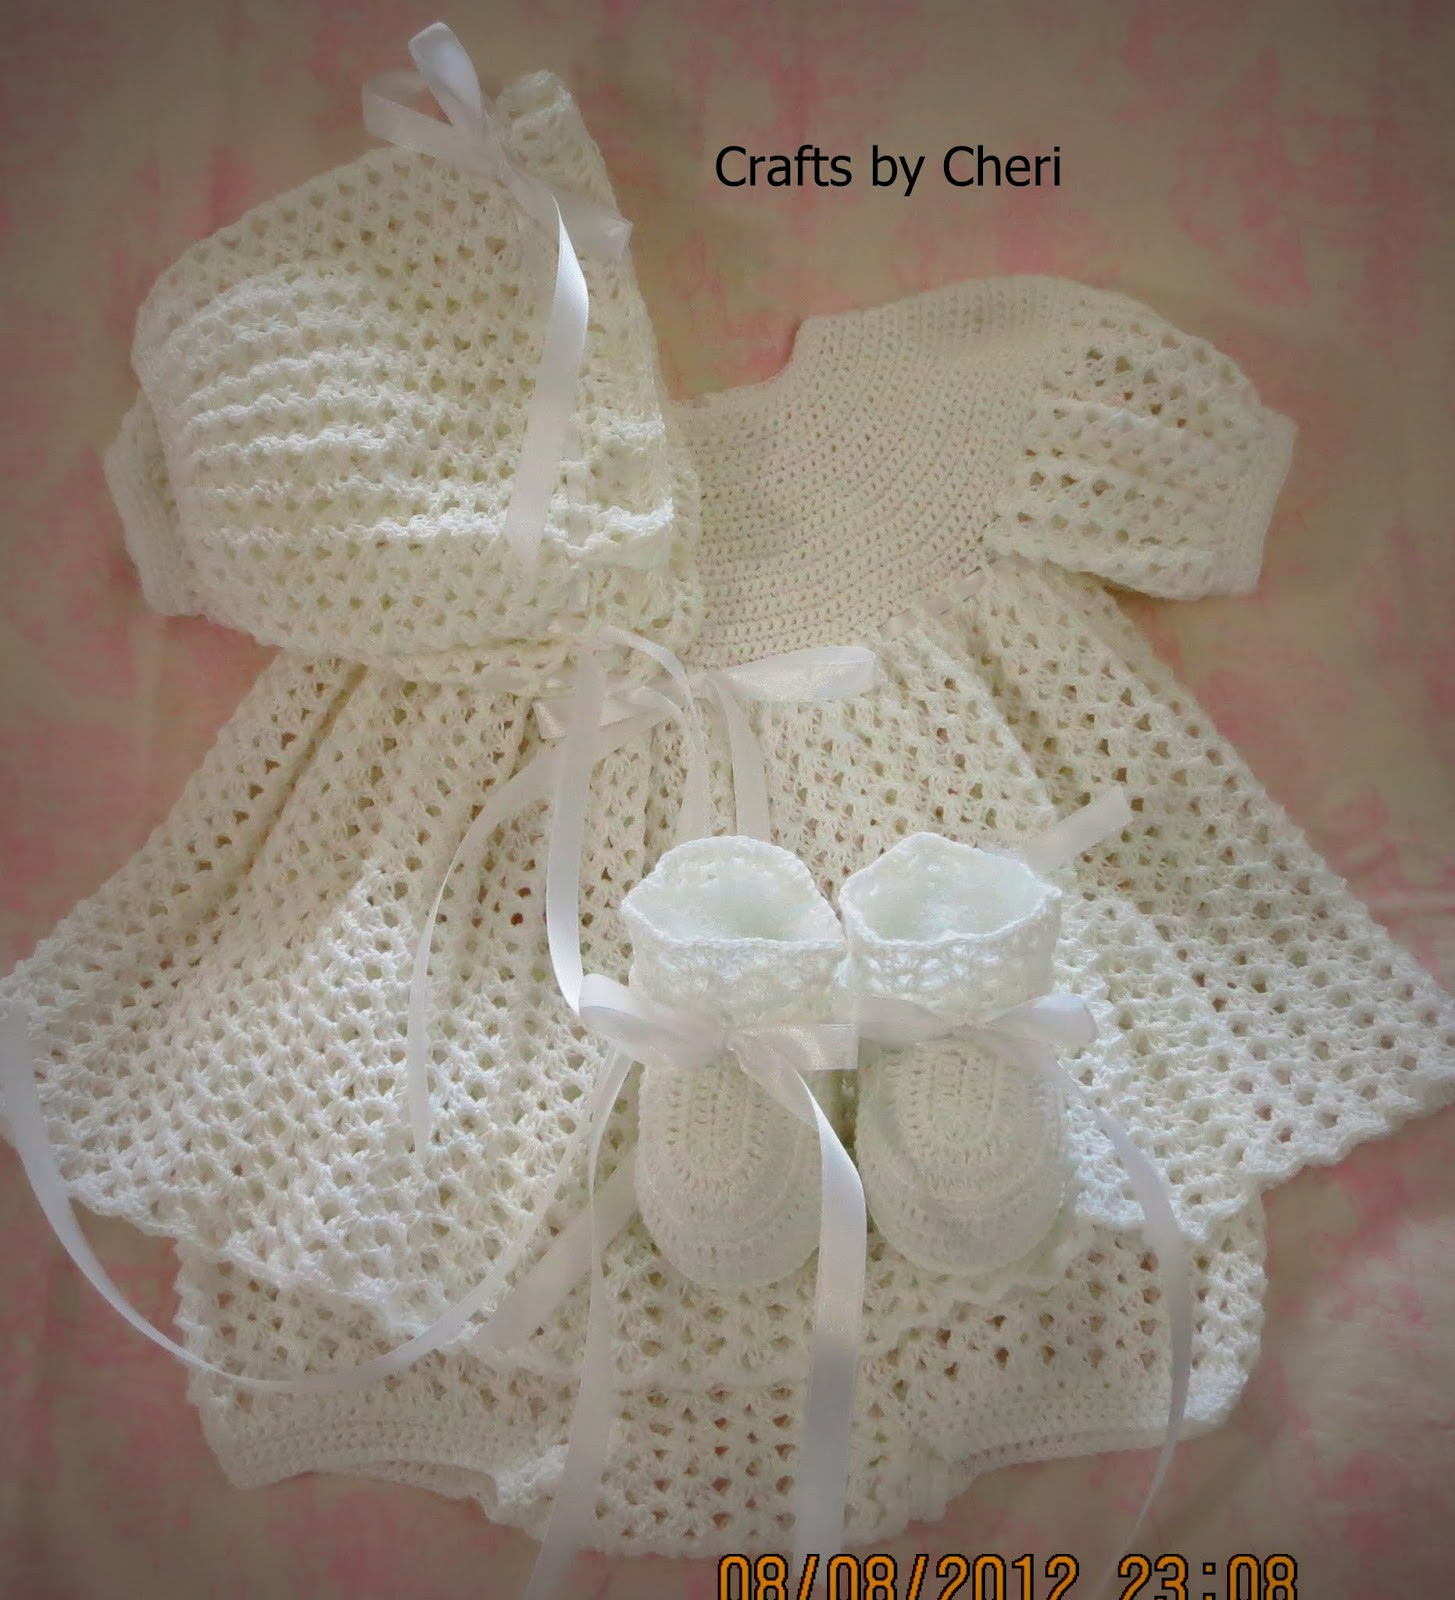 Crochet Baby Clothing Elegant Cheri S Crochet Baby or Reborn Baby Doll Clothing or Of Amazing 44 Ideas Crochet Baby Clothing